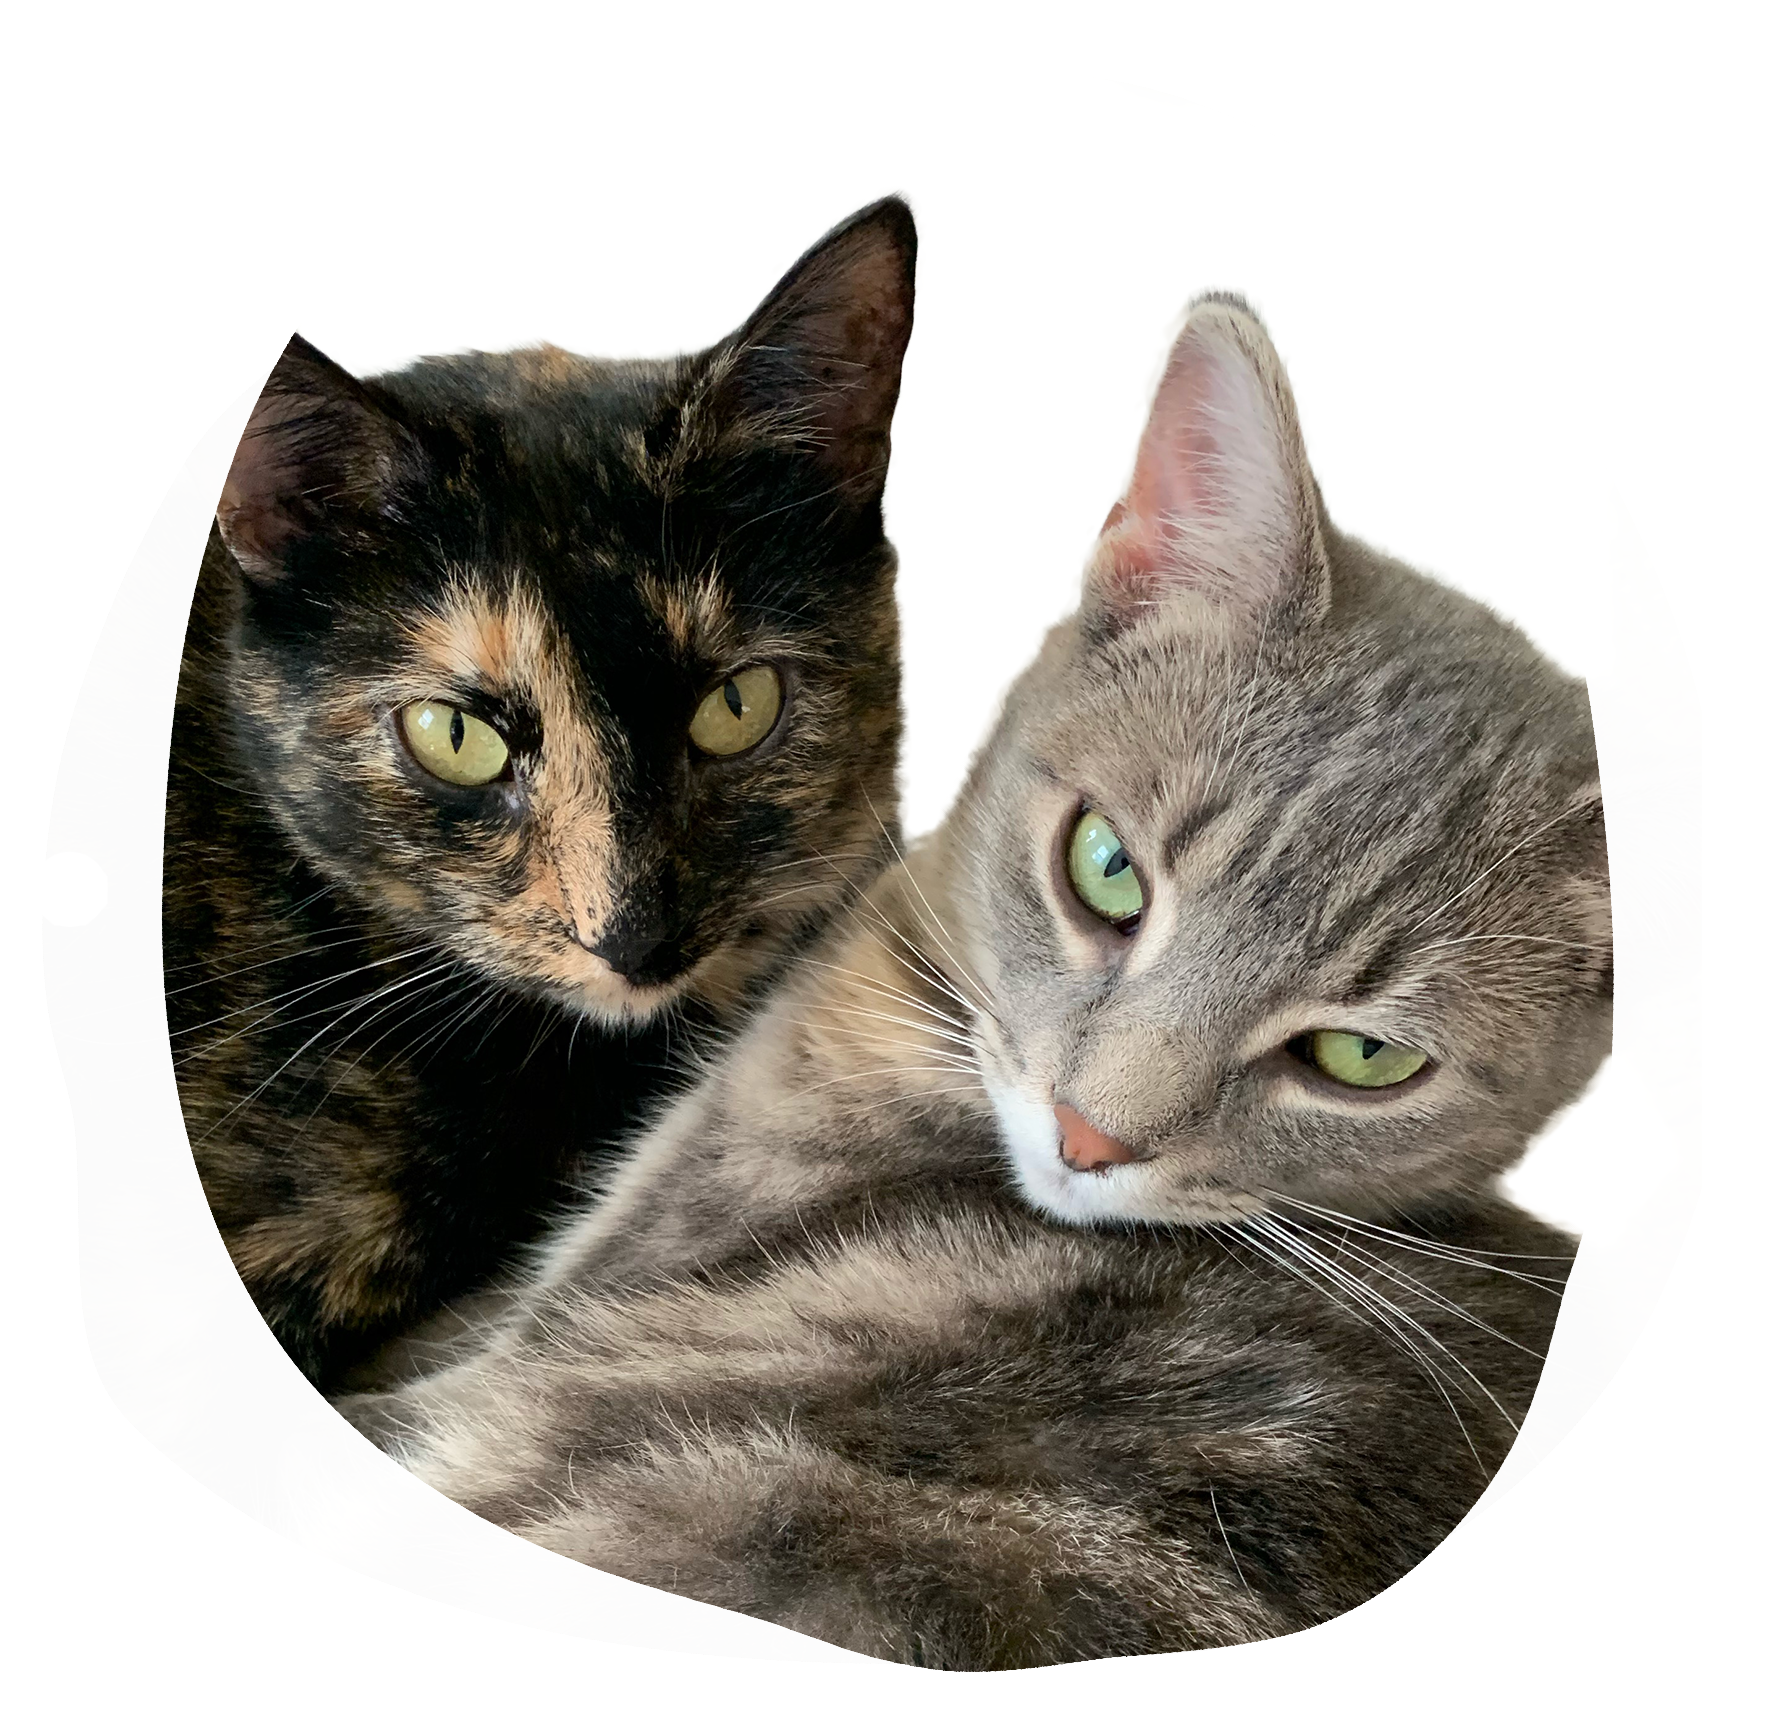 A round, organic splotch shape in off-white, featuring a photograph of two cats. One is gray and beige striped and the other is a black and orange tortoiseshell. They are snuggling.